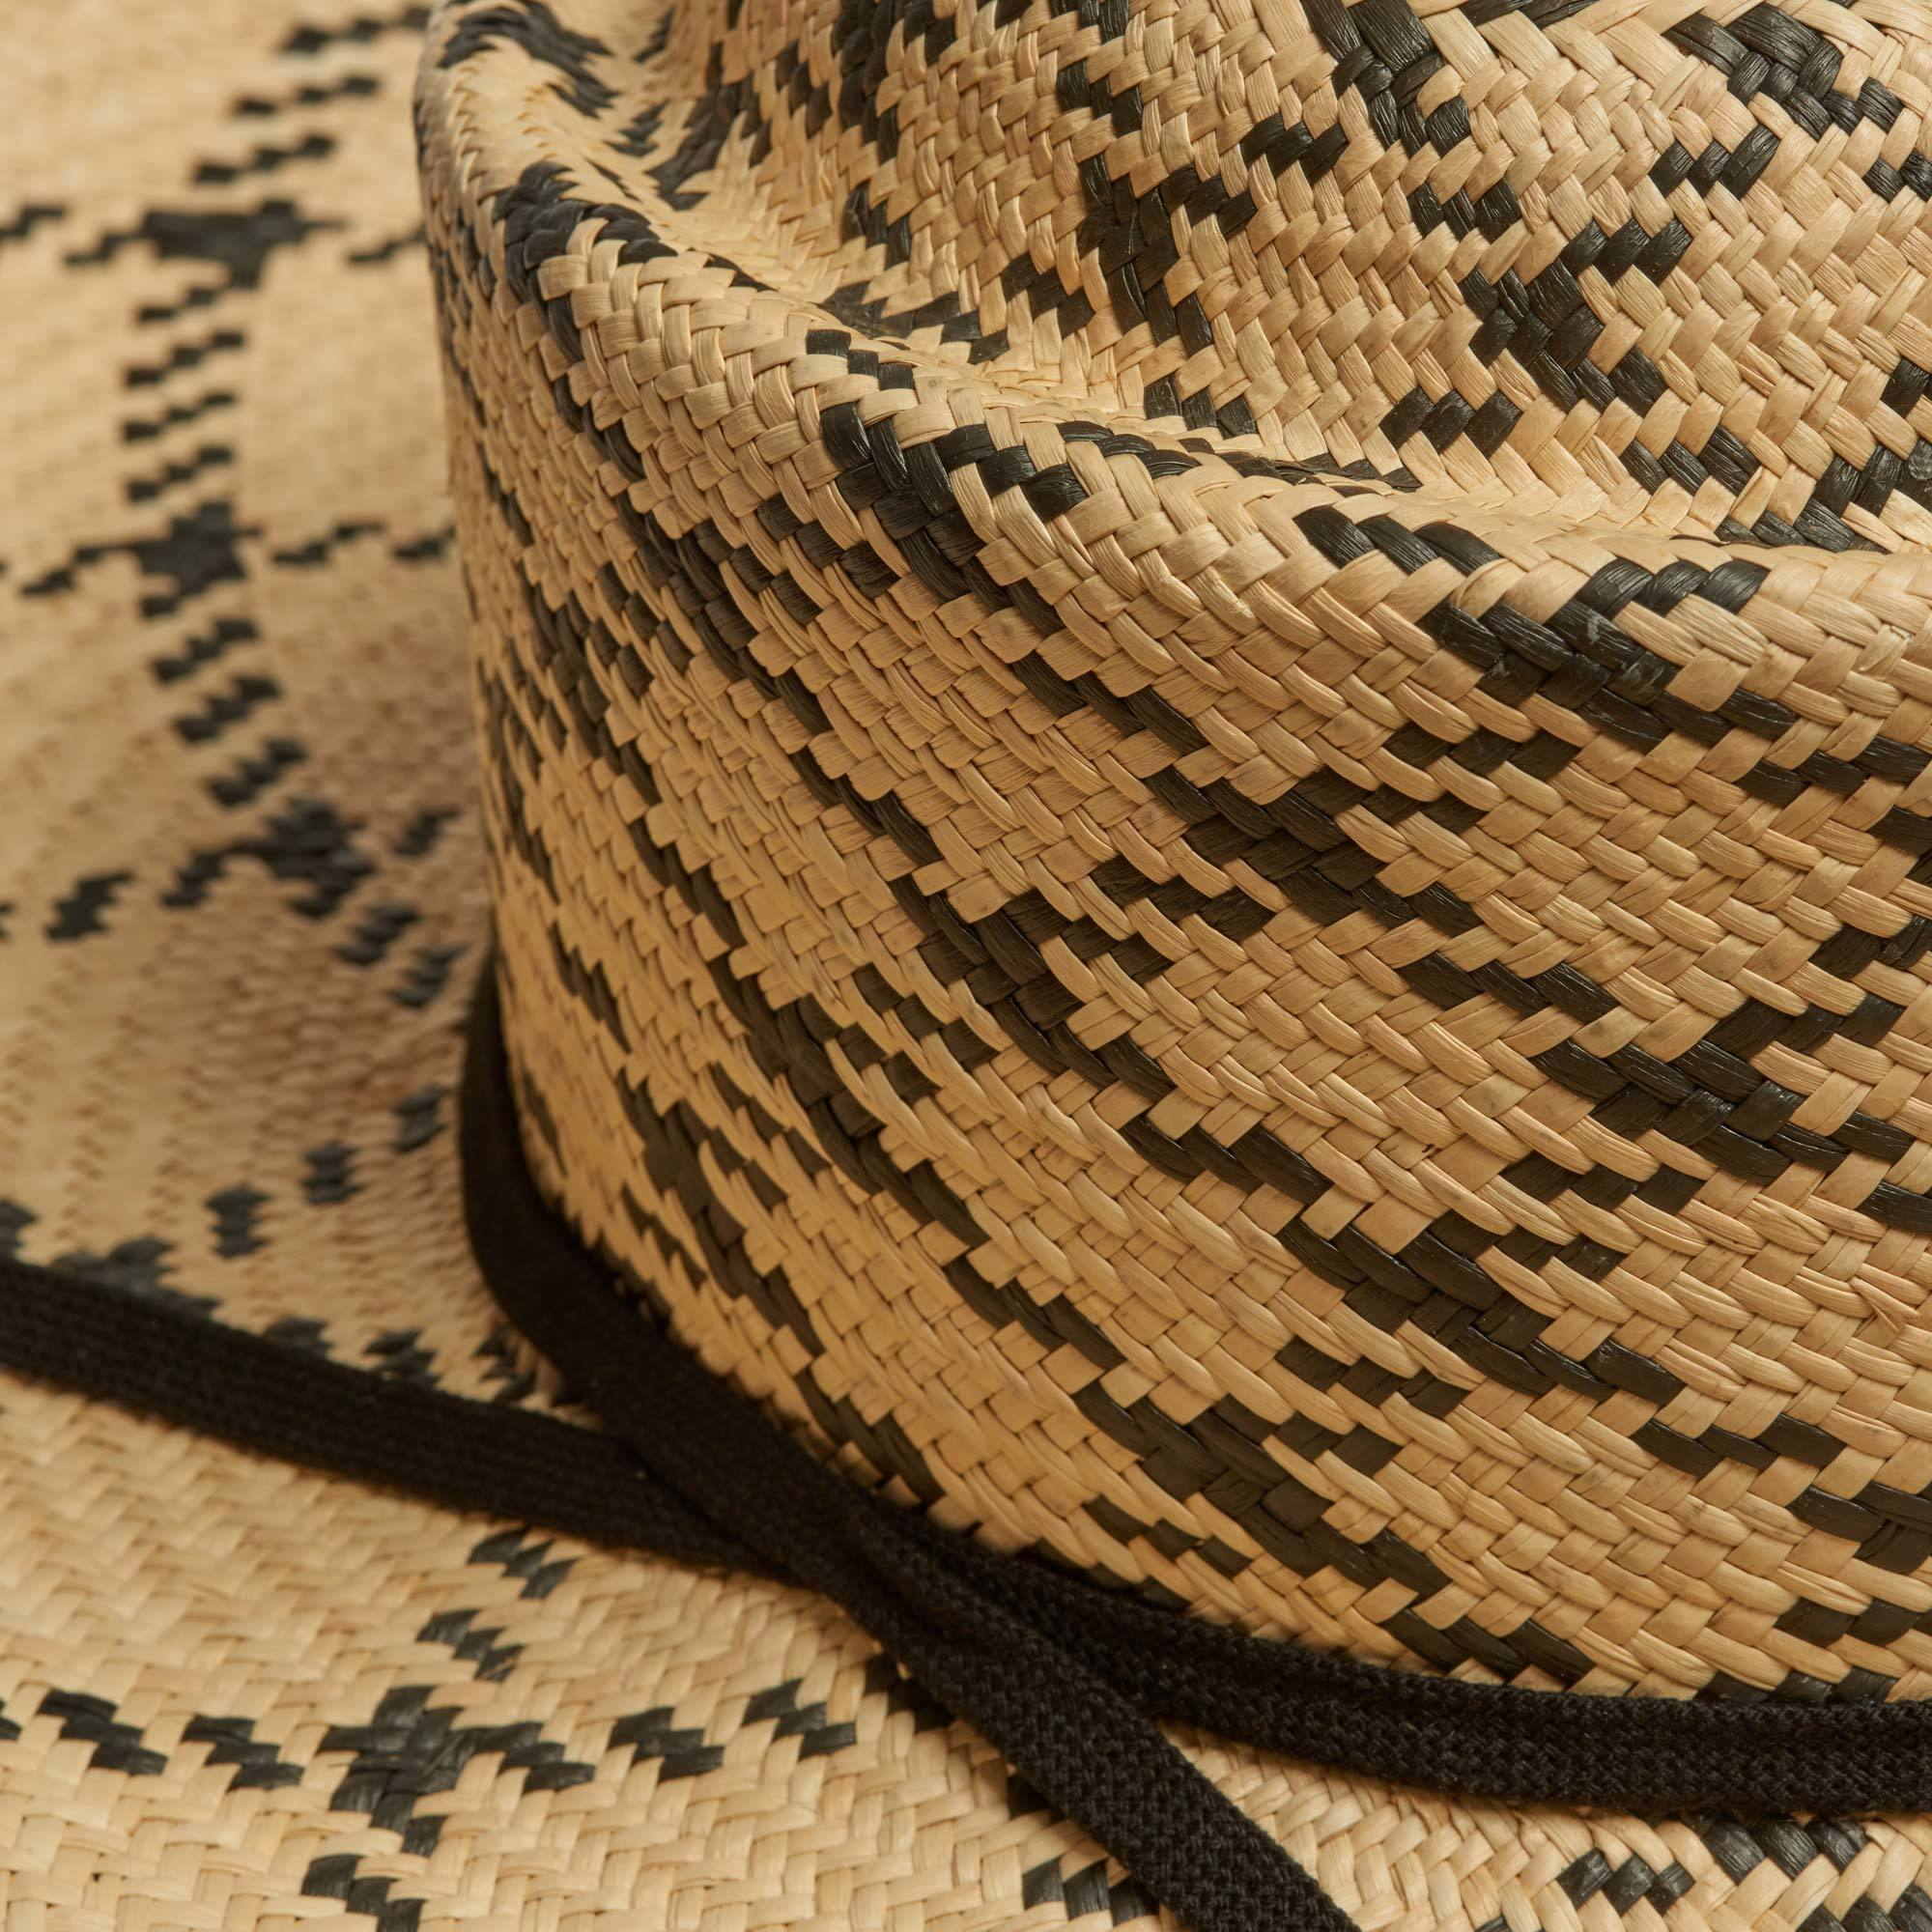 d664ad3e6ba76d Lucky Jim Wide Brim Panama Hat | The Garnered